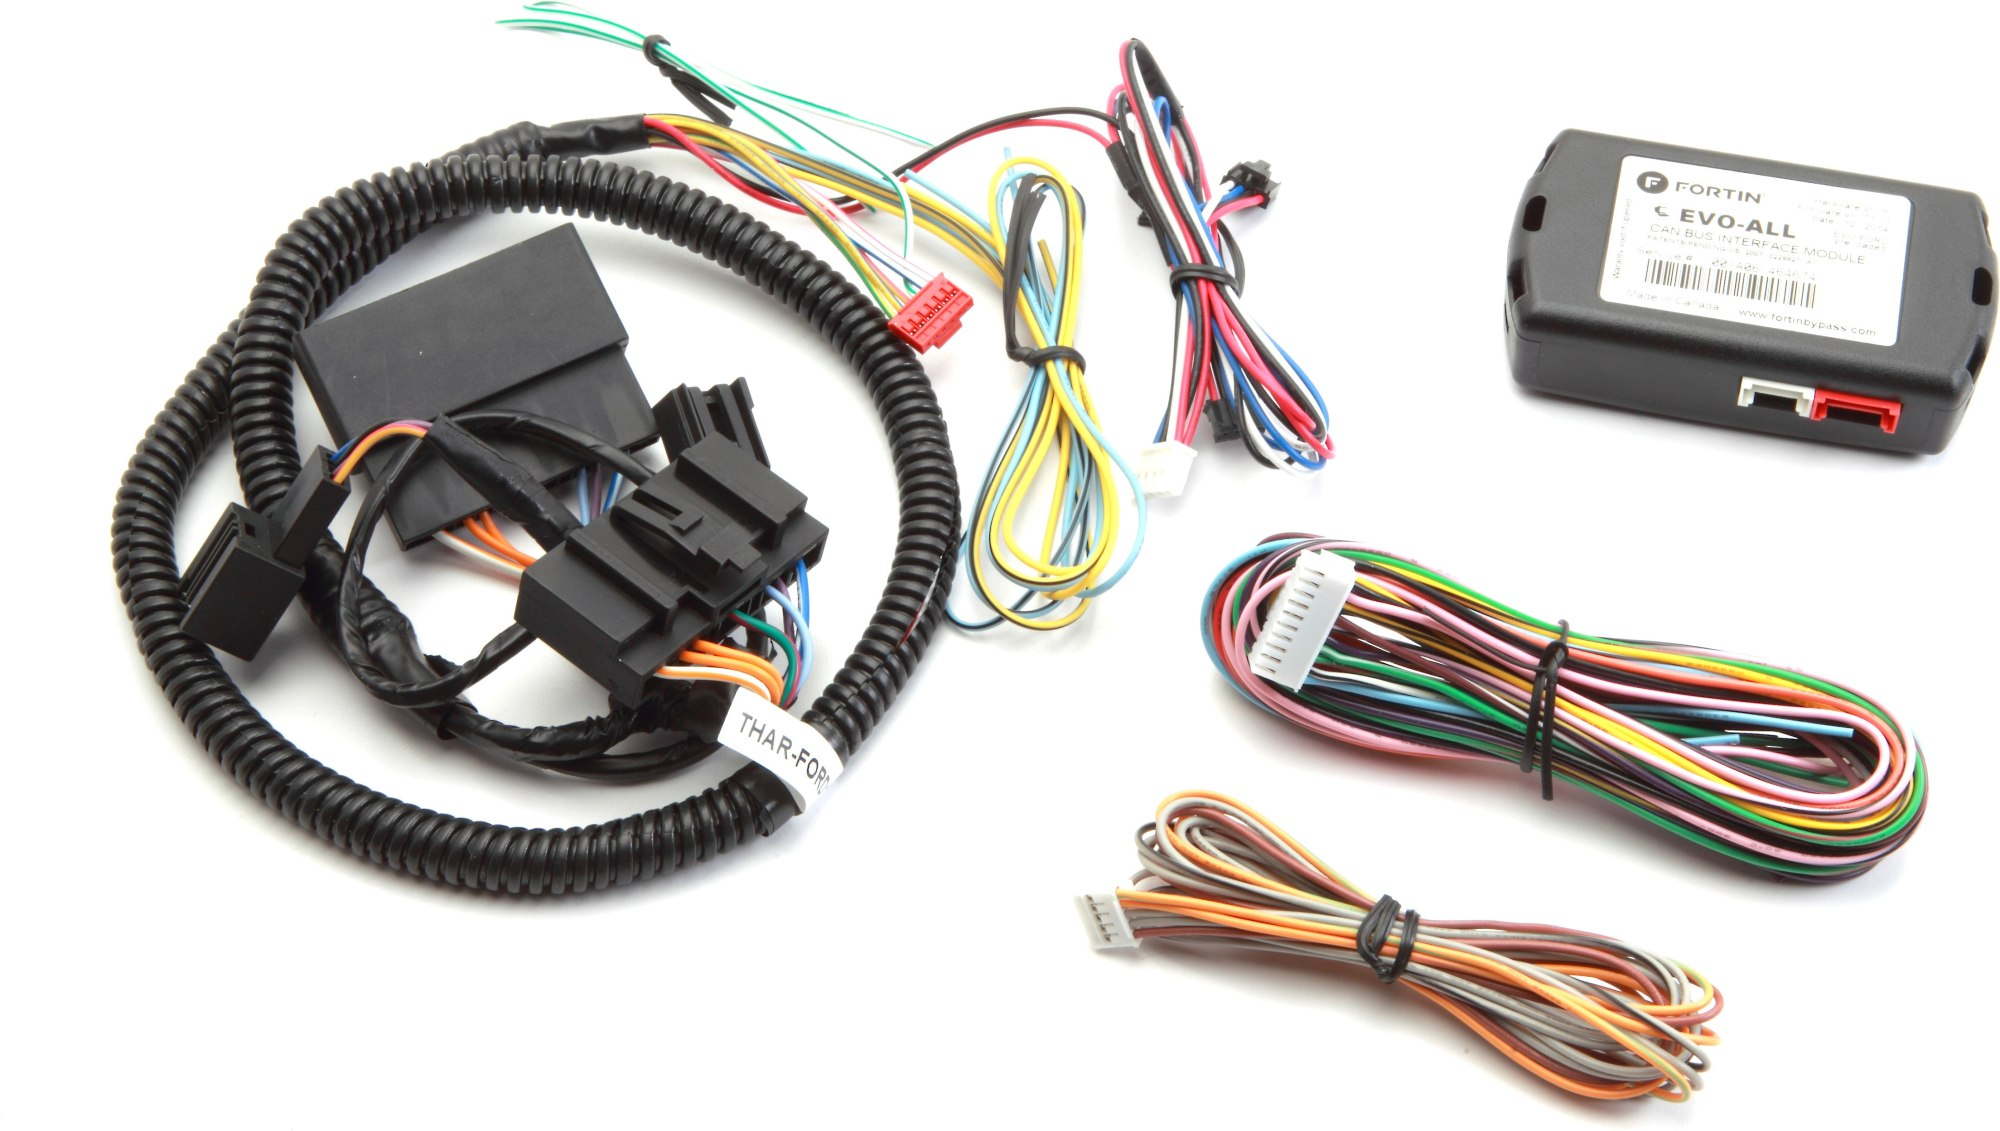 hight resolution of 12 fuse keep it clean wiring harness diagram besides 2012 ford f 150 12 fuse keep it clean wiring harness diagram besides 2012 ford f 150